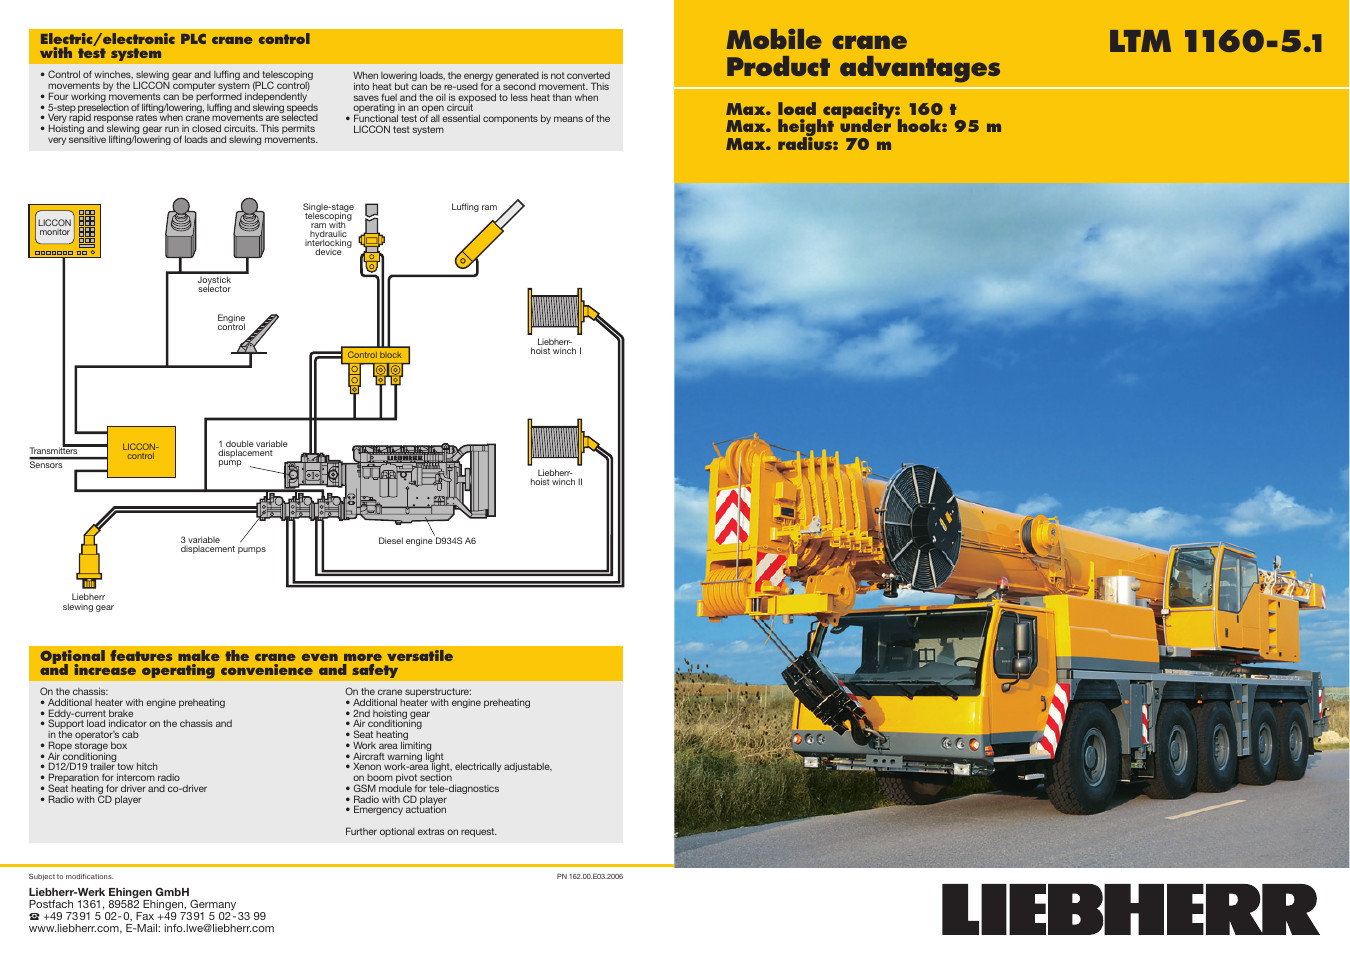 Liebherr Crane Wiring Diagram Trusted Mettler Toledo Ltm 1160 5 1 User Manual 11 Pages